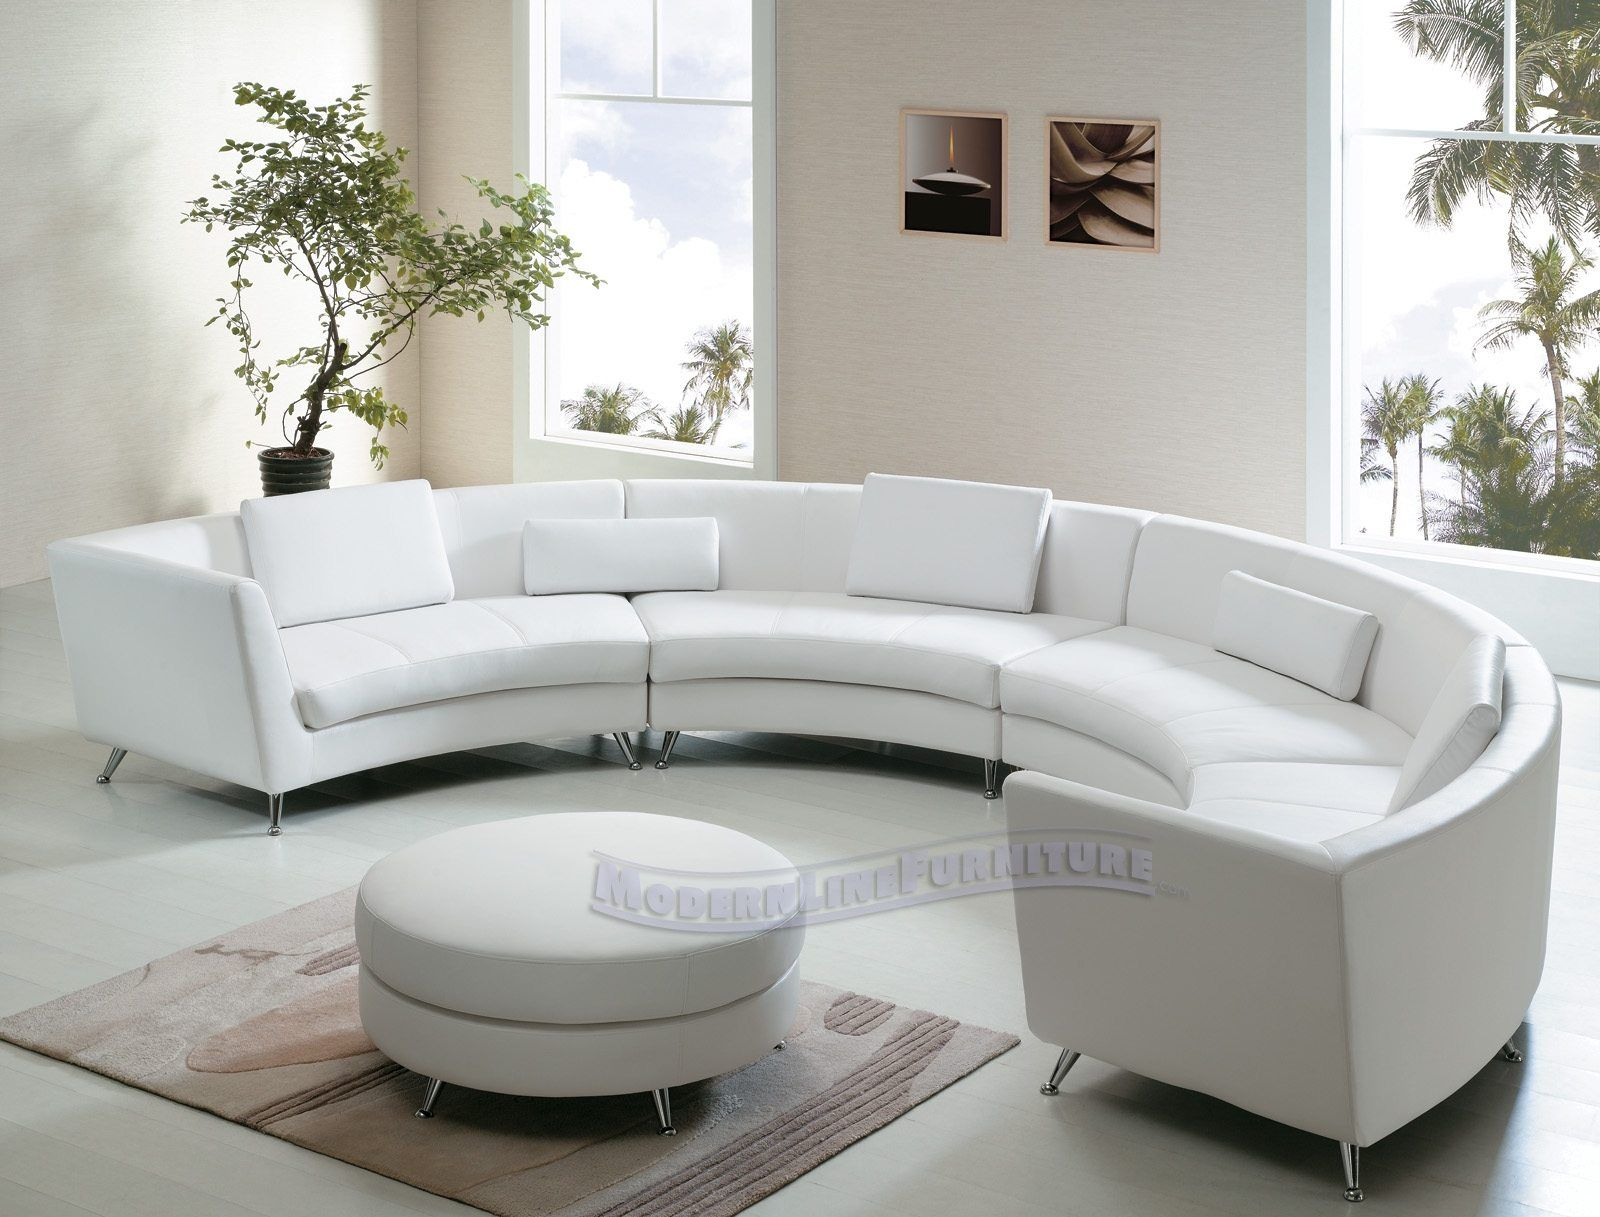 Comfortable Curved Sectional For Elegant Living Room Design